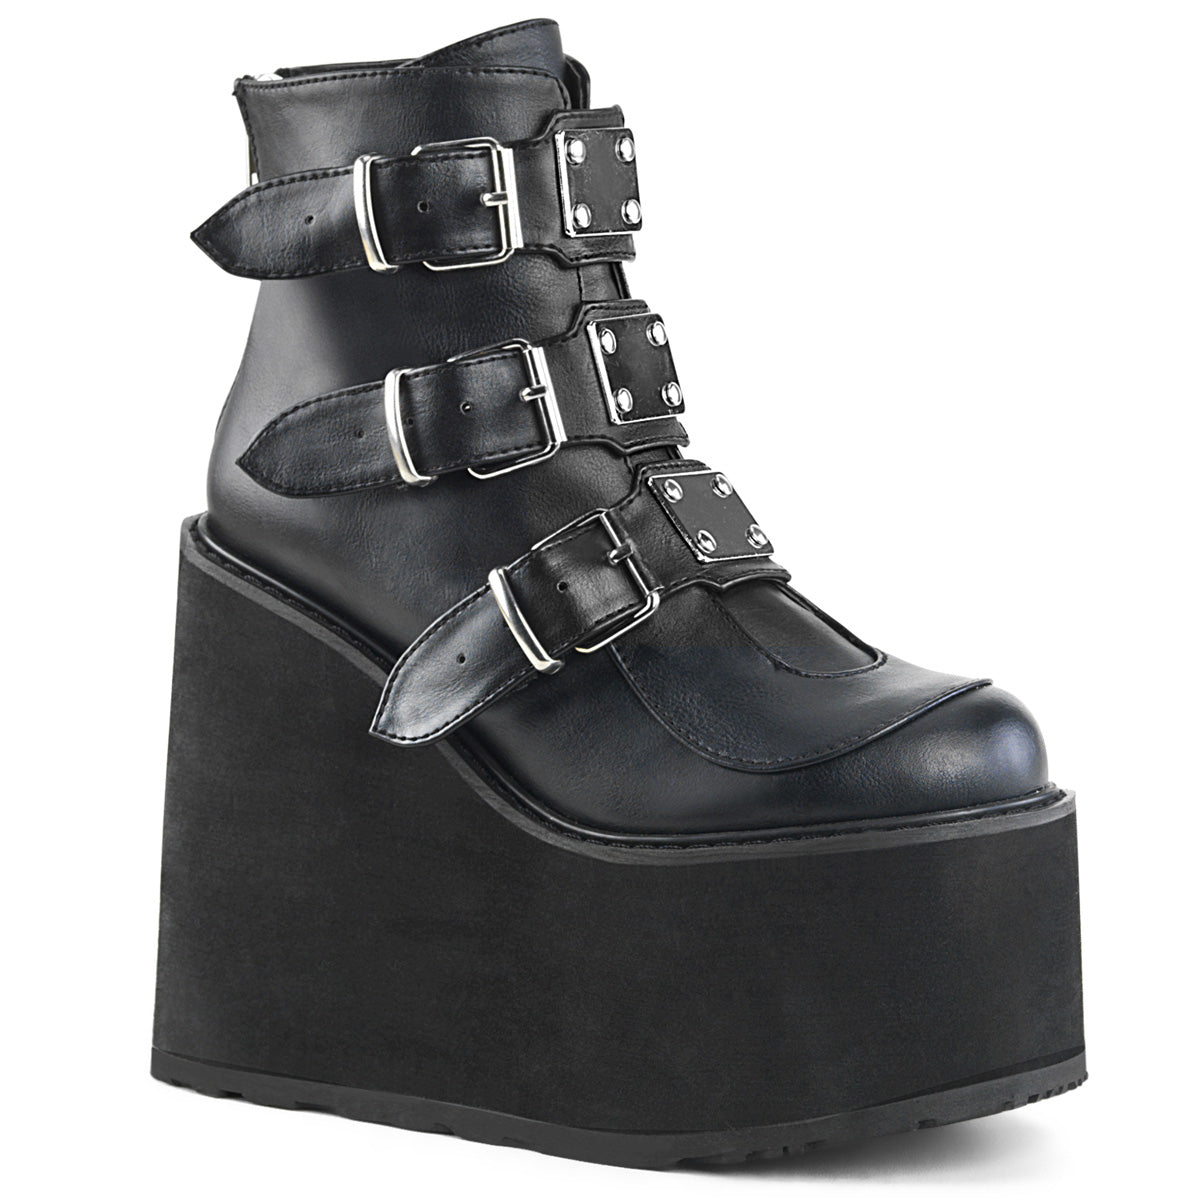 "5 1/2"" PF Ankle Boot w/ 3 Buckle Straps, Back Zip"